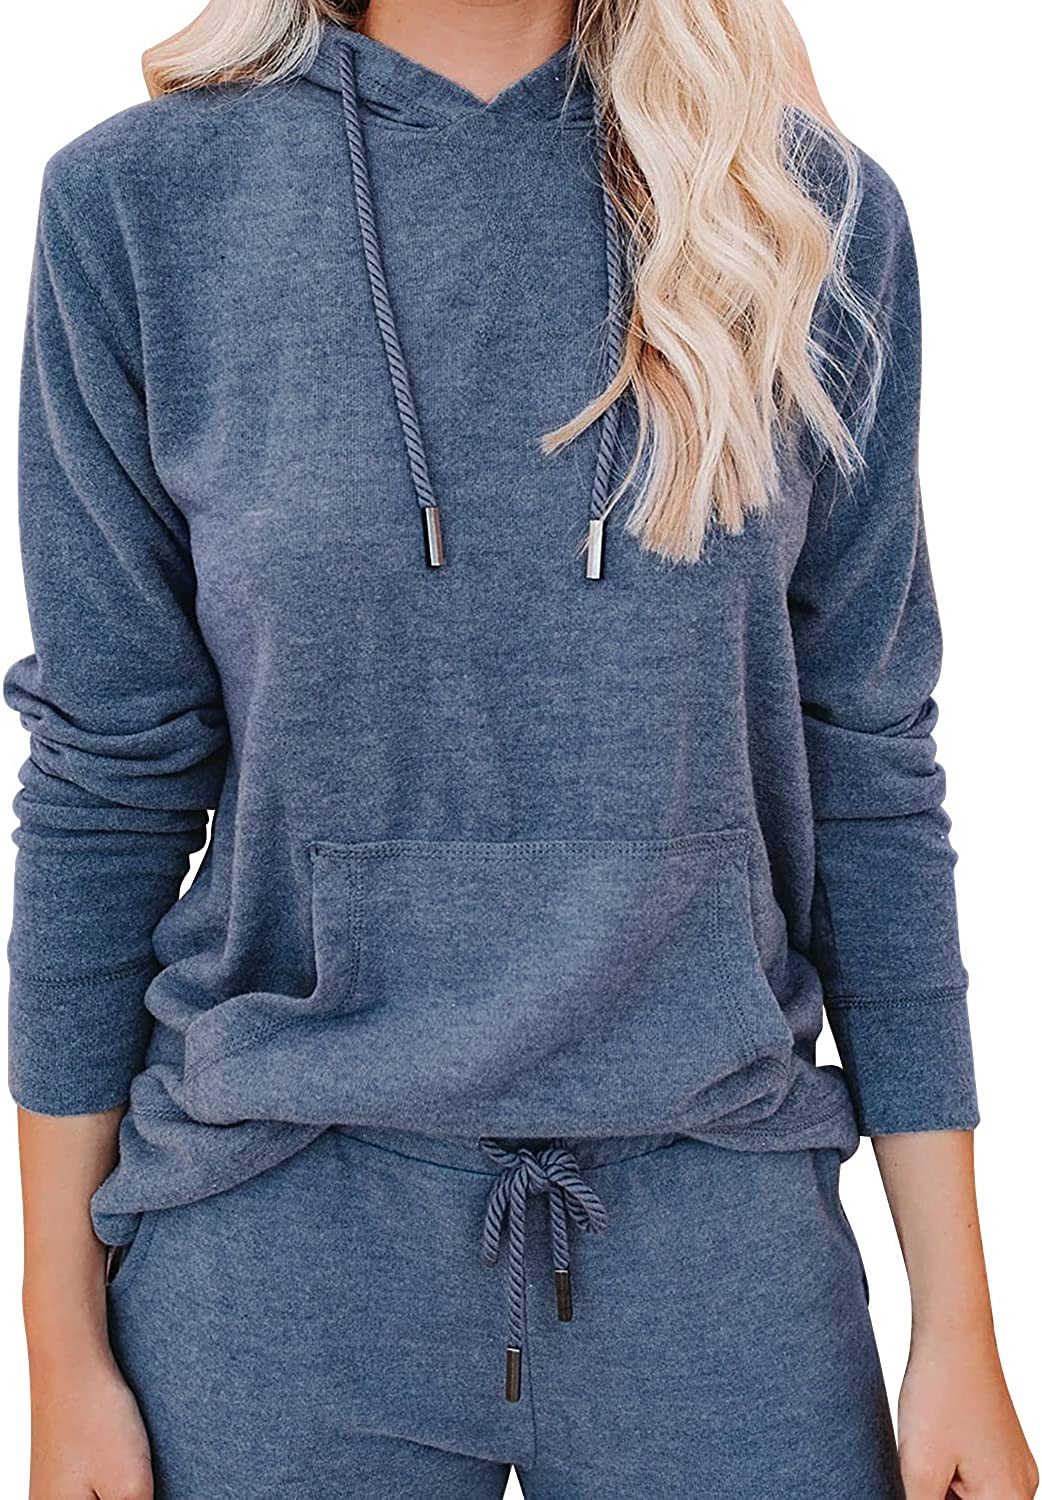 Lounge Sets for Women Two Piece Outfits Sweatsuits Sets Long Pant Loungewear Workout Athletic Tracksuits with Pockets at  Women's Clothing store